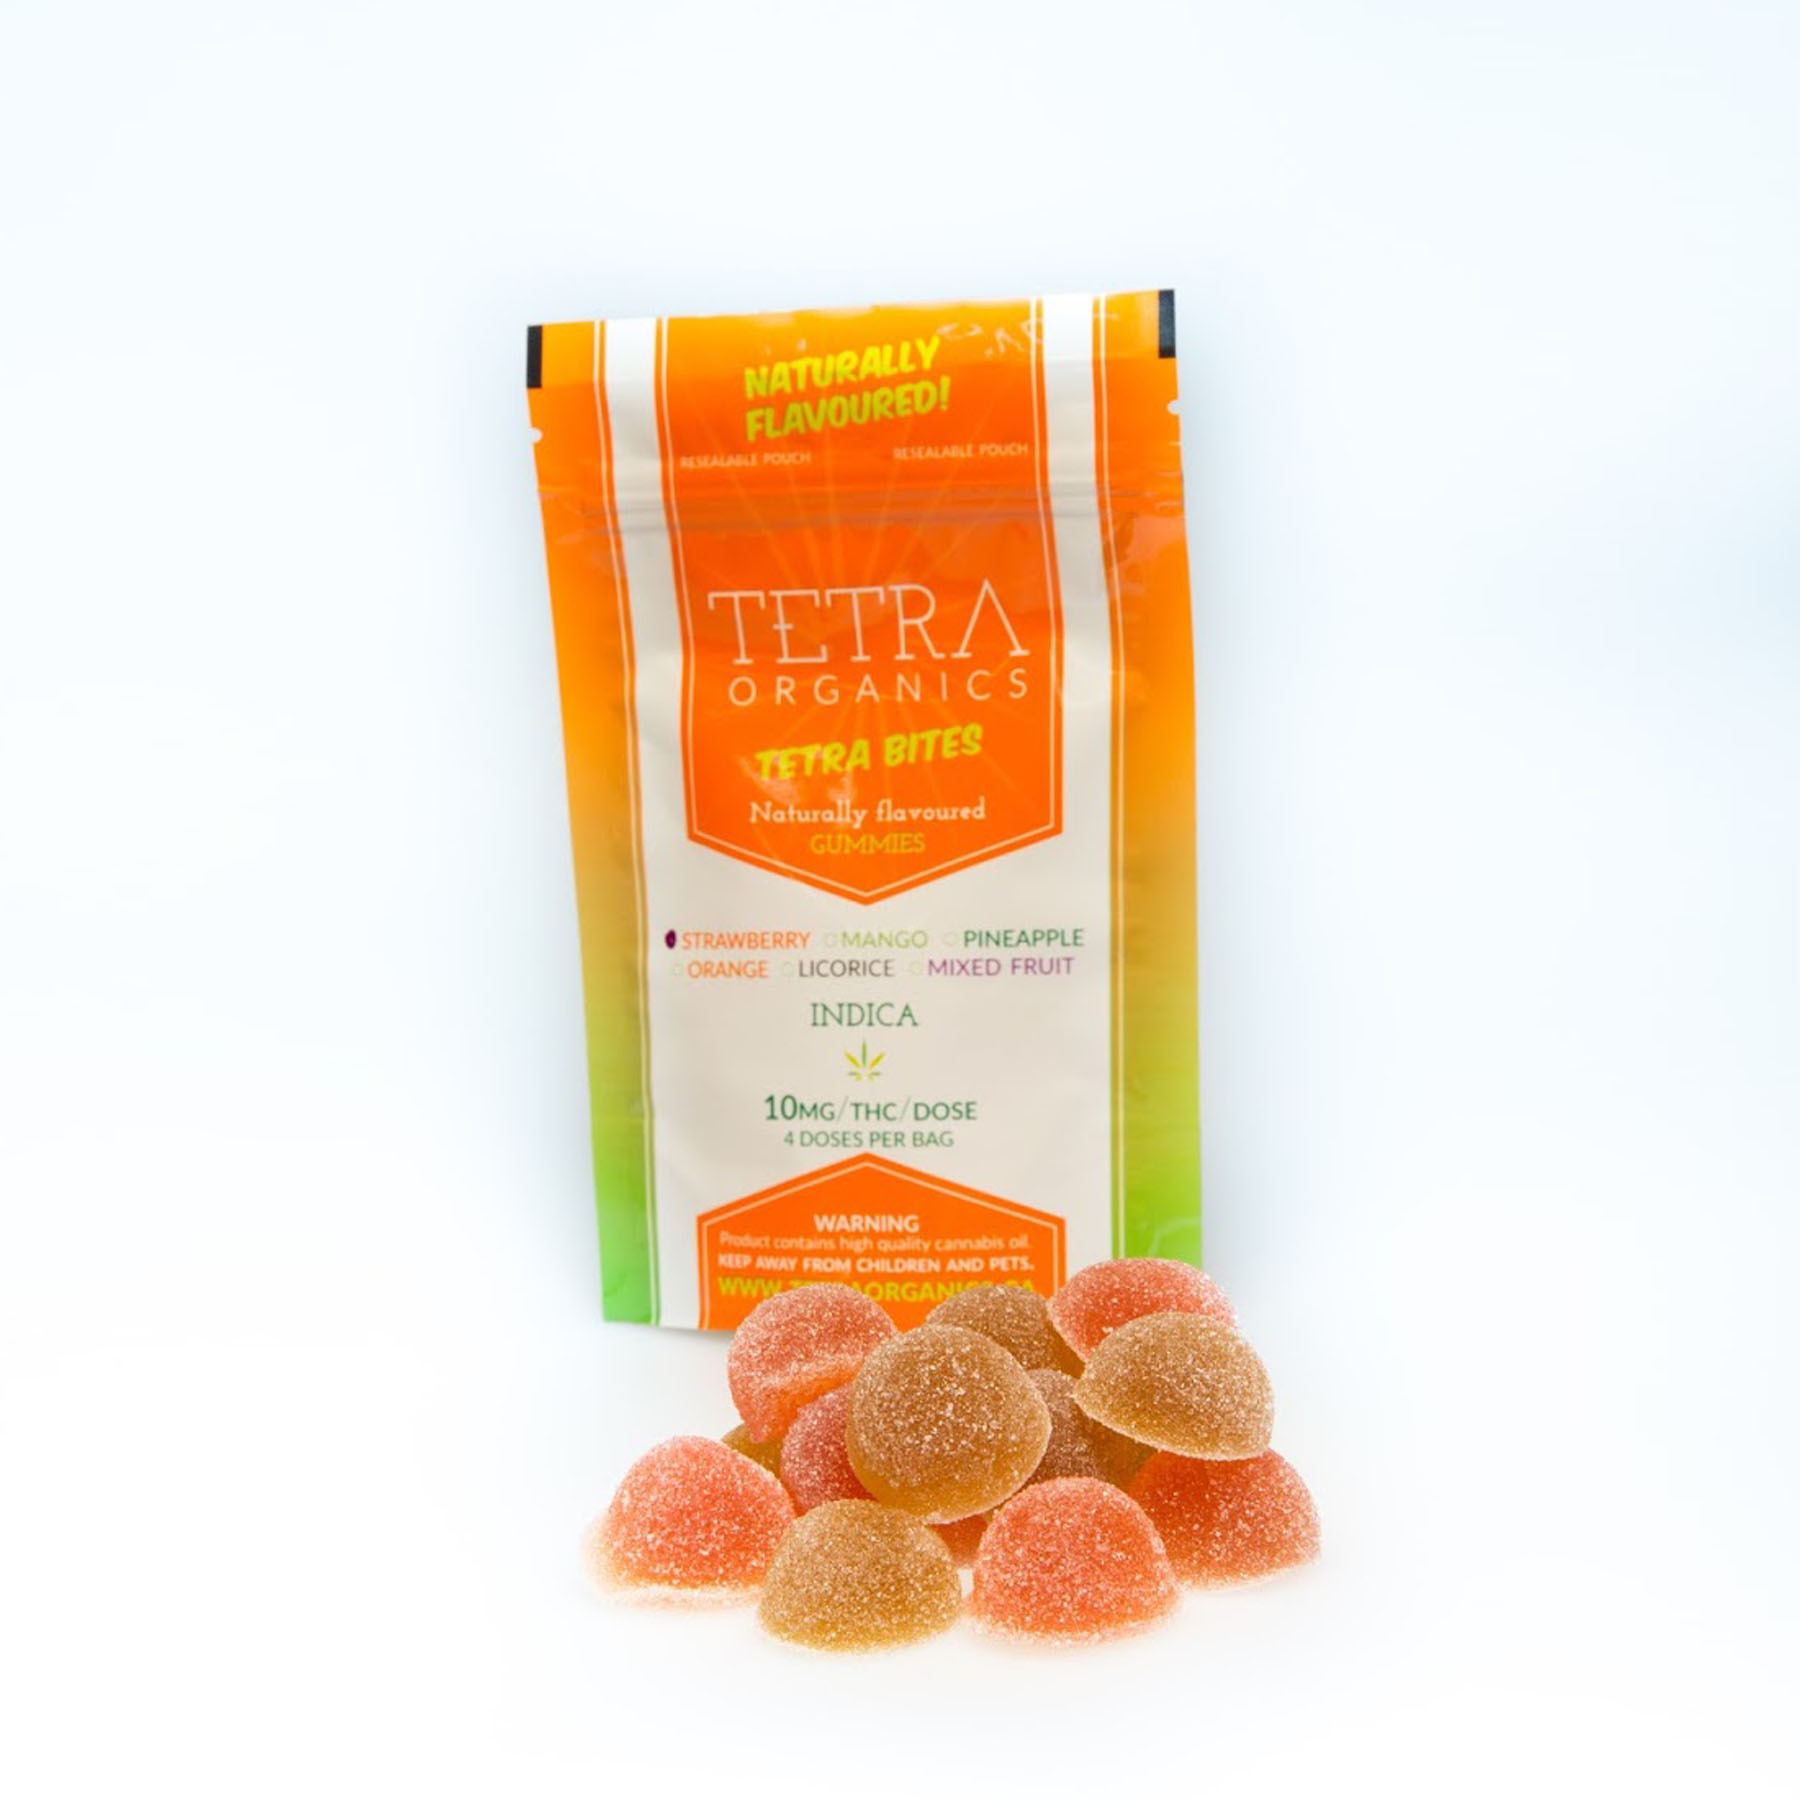 Tetra Bites Gummy Candies by Get Kush - Image © 2018 Get Kush. All Rights Reserved.